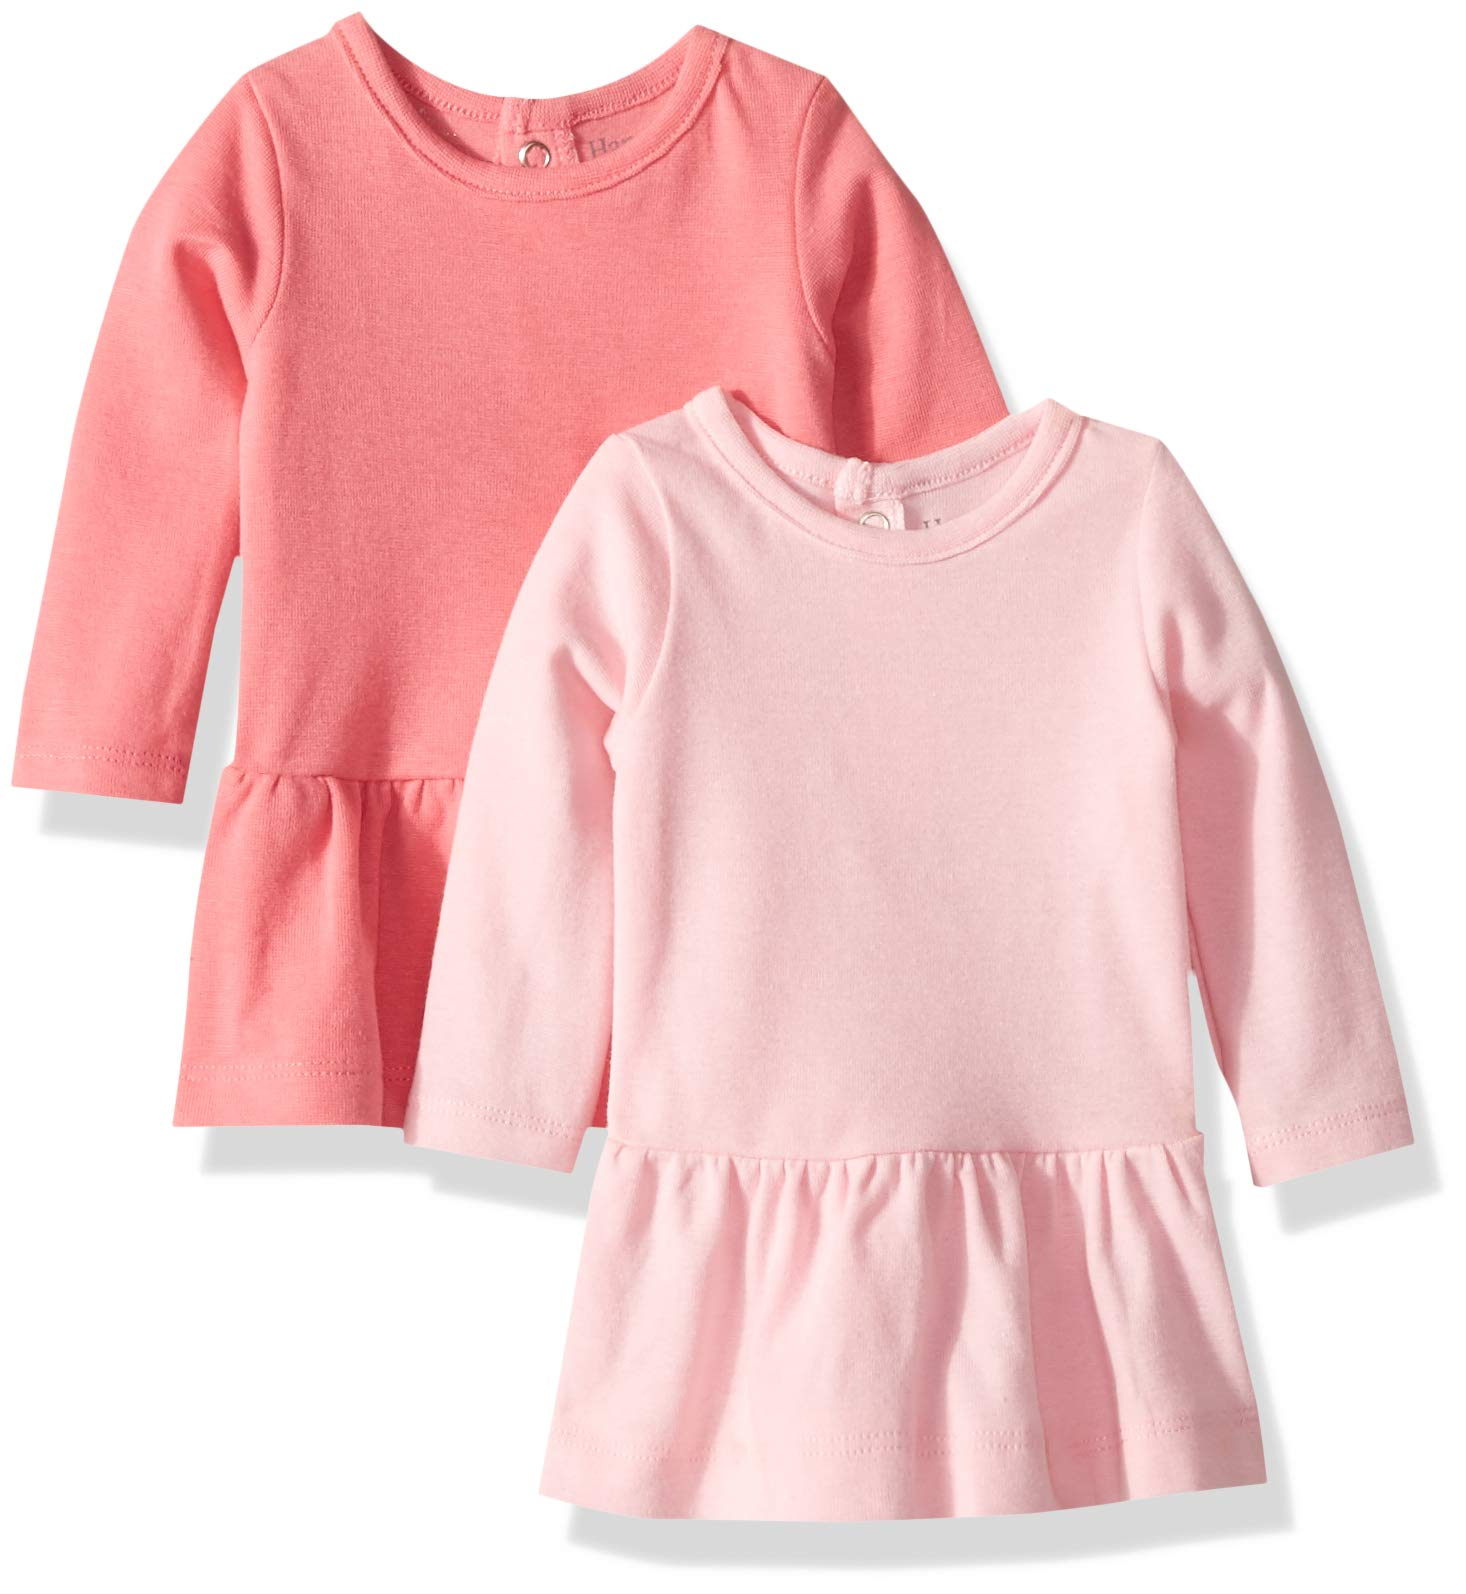 Hanes Ultimate Baby Flexy 2 Pack Knit Long Sleeve Dresses, Pink, 18-24 Months by Hanes